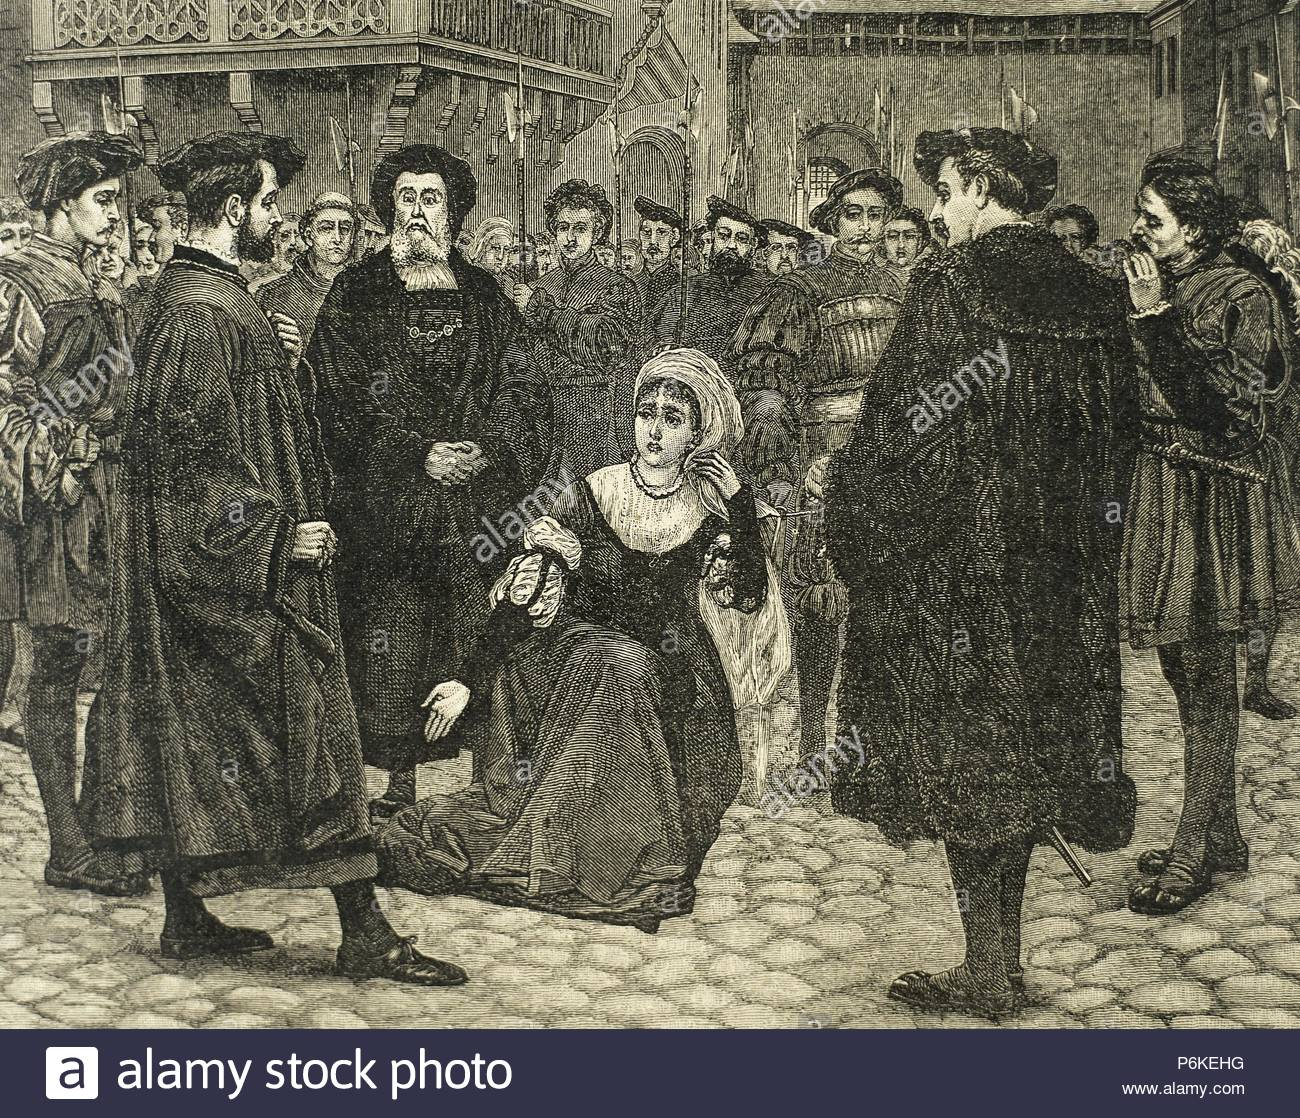 Anne Boleyn (1507-1536), Queen of England (1533-1536) as the second wife of Henry  VIII, led to the gallows to be executed by beheading after being accused ...